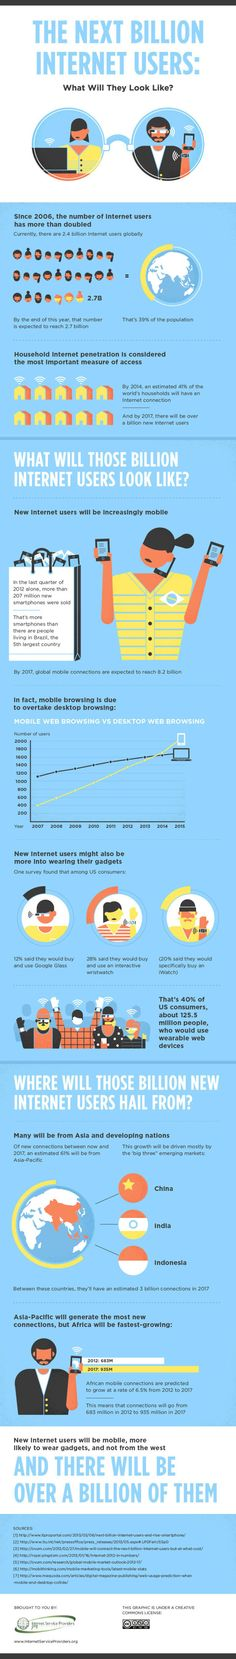 The next Billion Internet users (what will they look like) #infografia #infographic